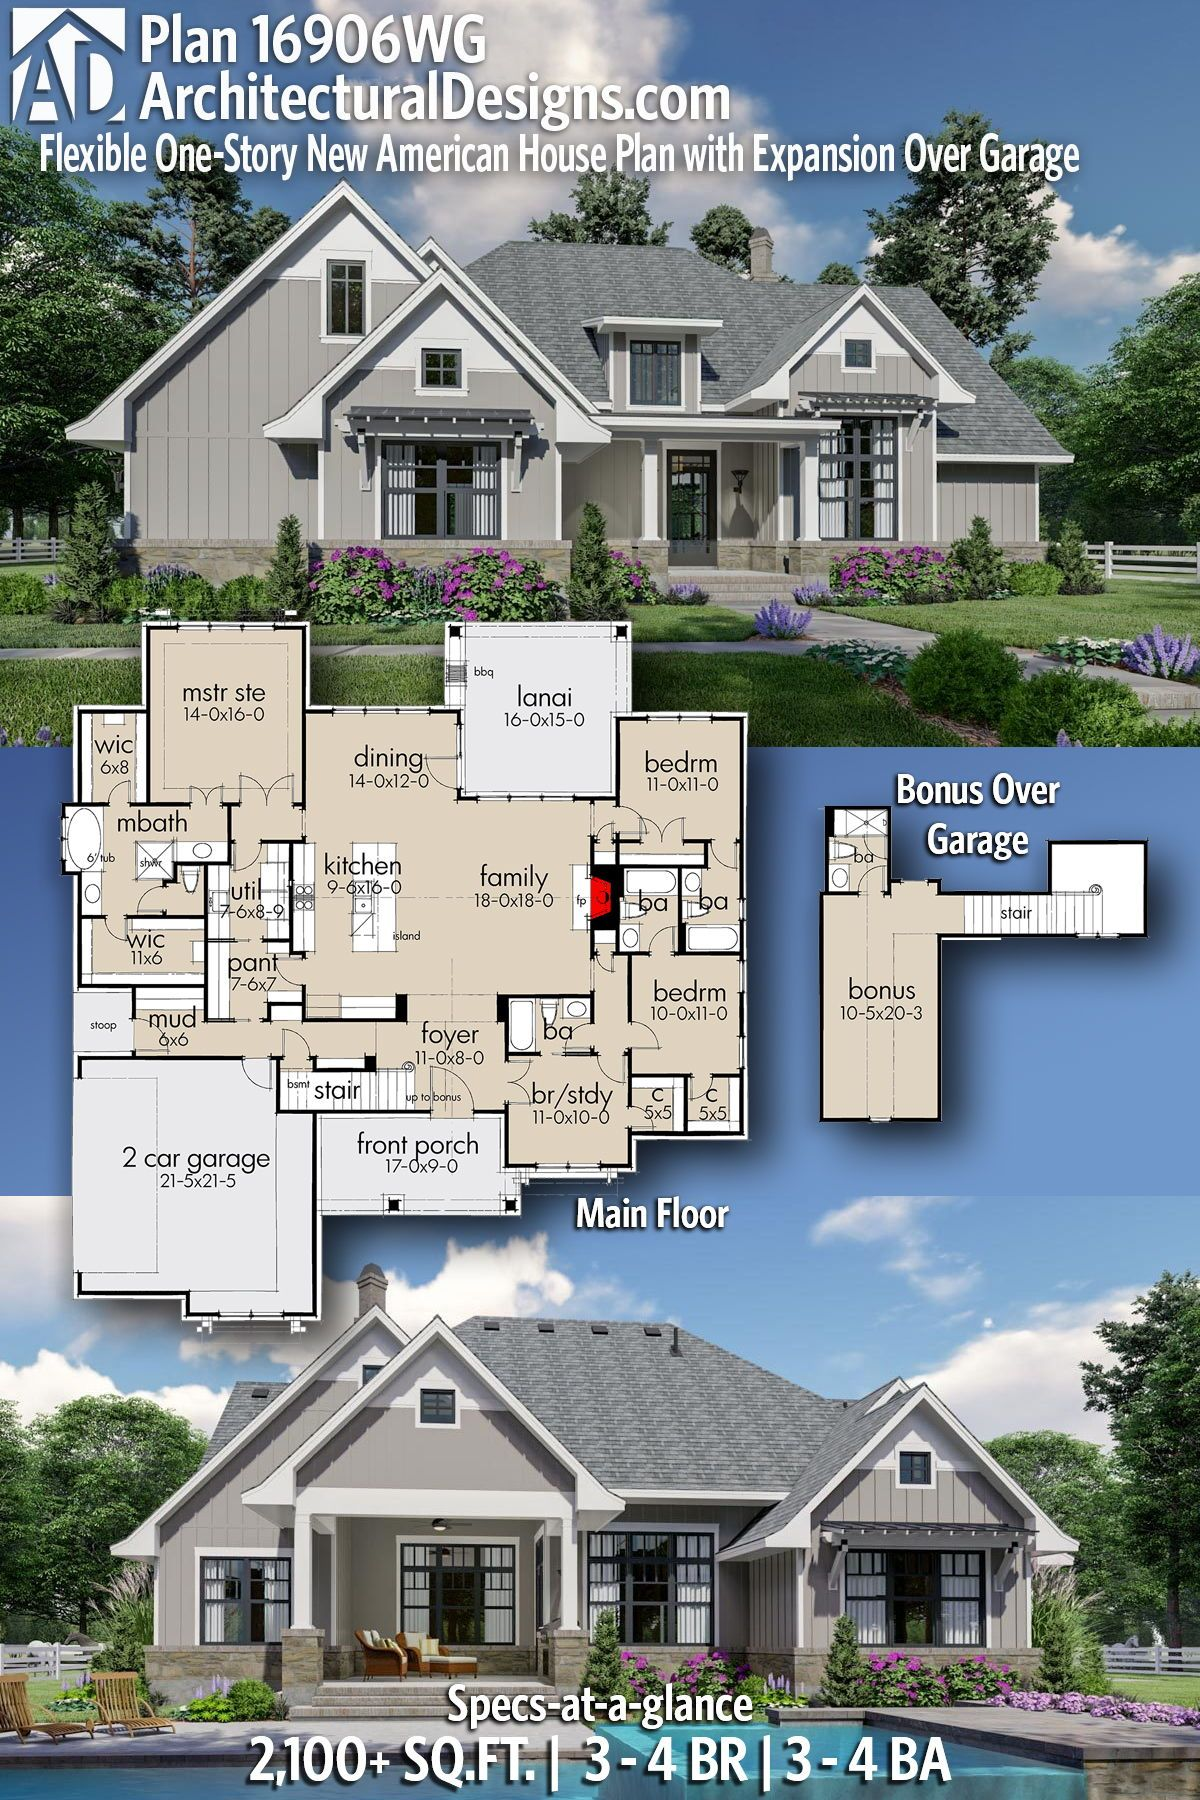 Architectural designs house modern farmhouse plan wg gives you bedrooms also flexible one story new american with rh co pinterest